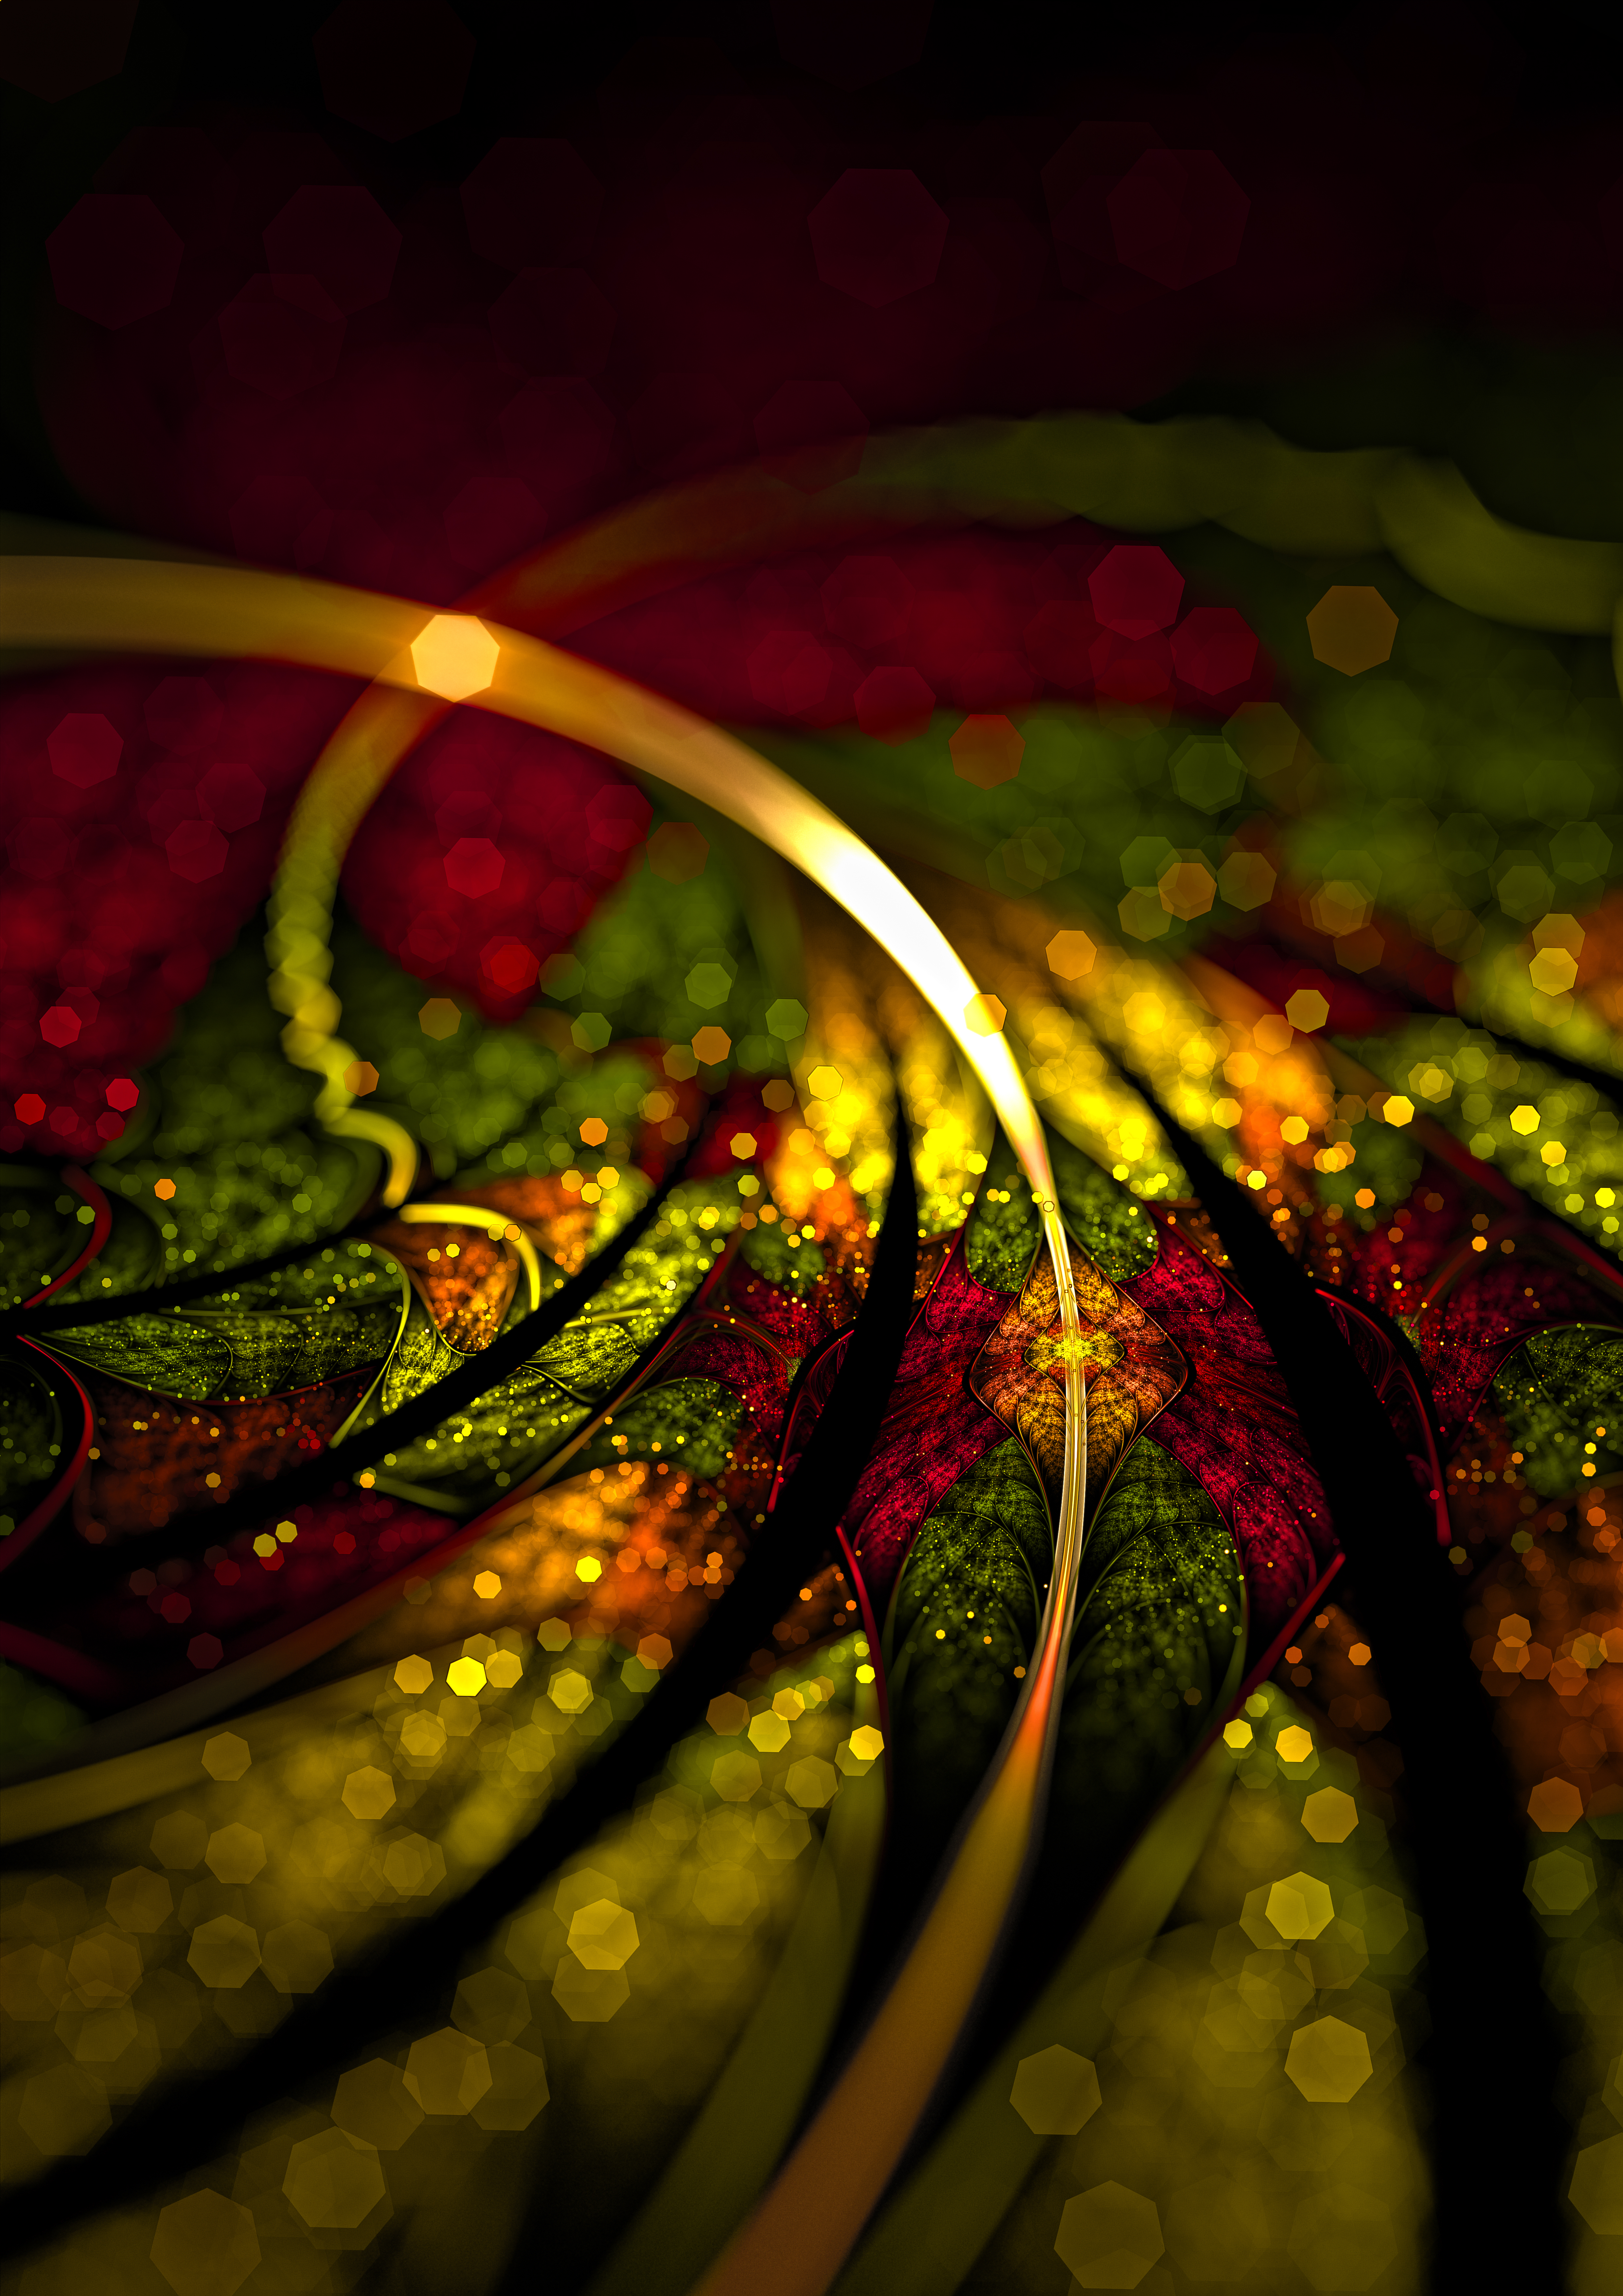 134386 download wallpaper Abstract, Fractal, Multicolored, Motley, Glare, Digital screensavers and pictures for free